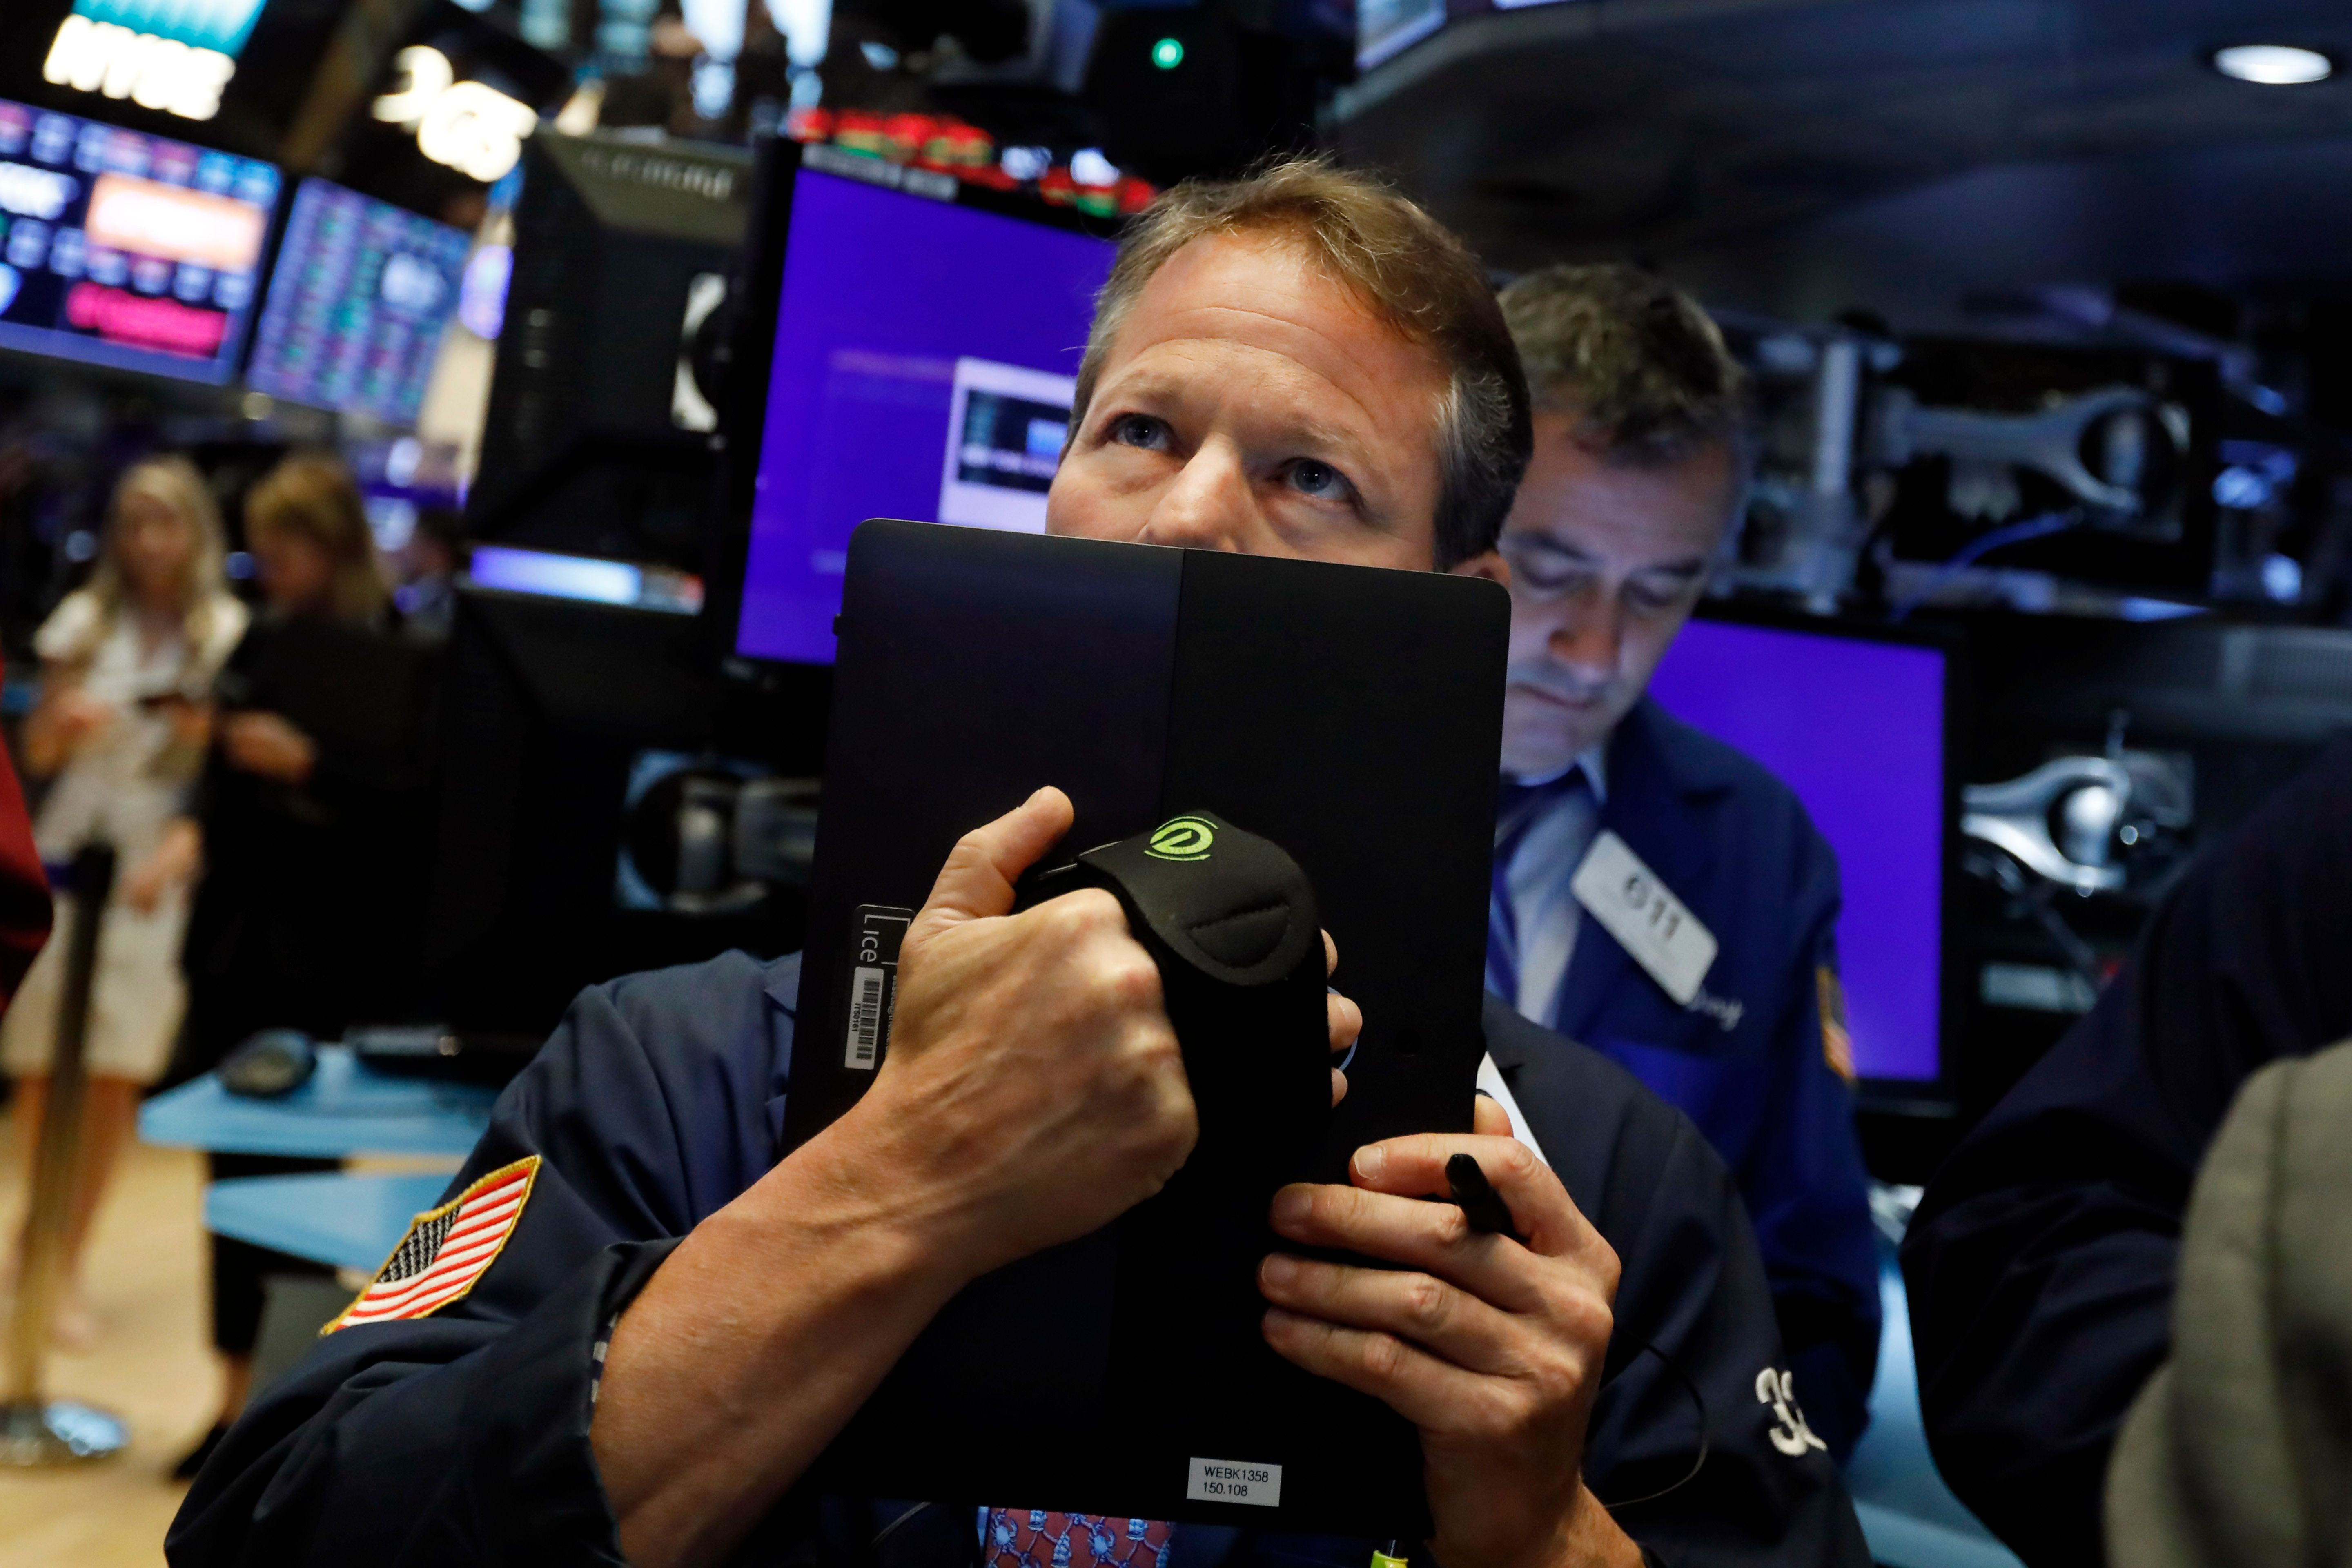 Dow tumbles as U.S-China trade spat stokes investor fears